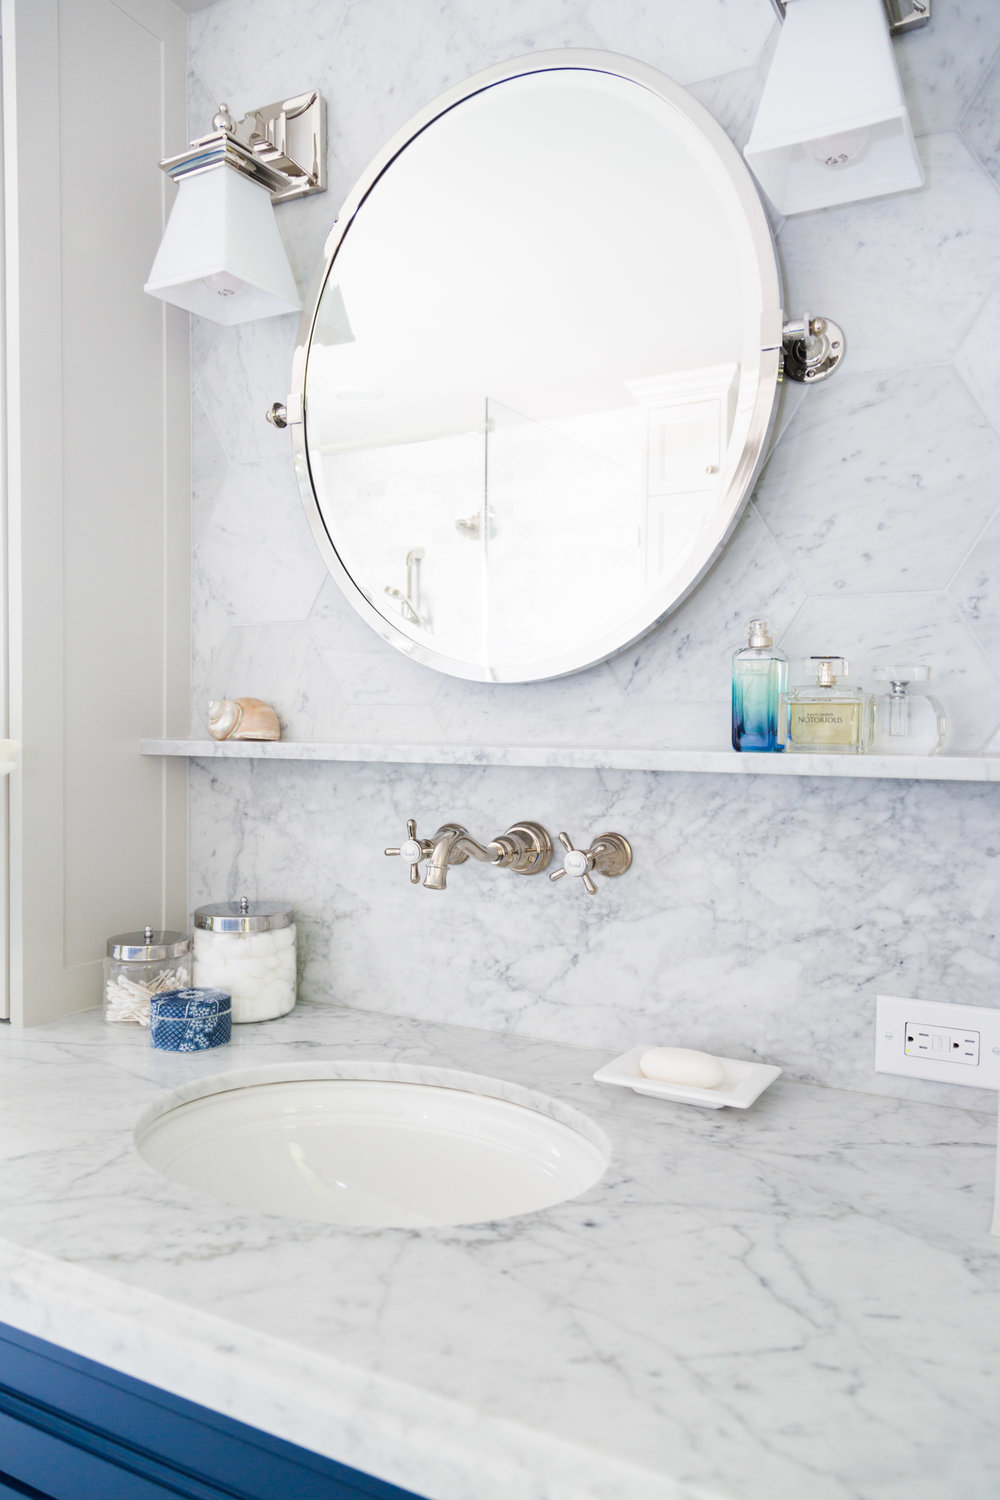 Marble ledge and wall mount faucet with pivot mirror at master bathroom vanity | Carla Aston, Designer | Tori Aston, Photographer #bathroomremodel #marblebathroom #hextile #bluecabinets